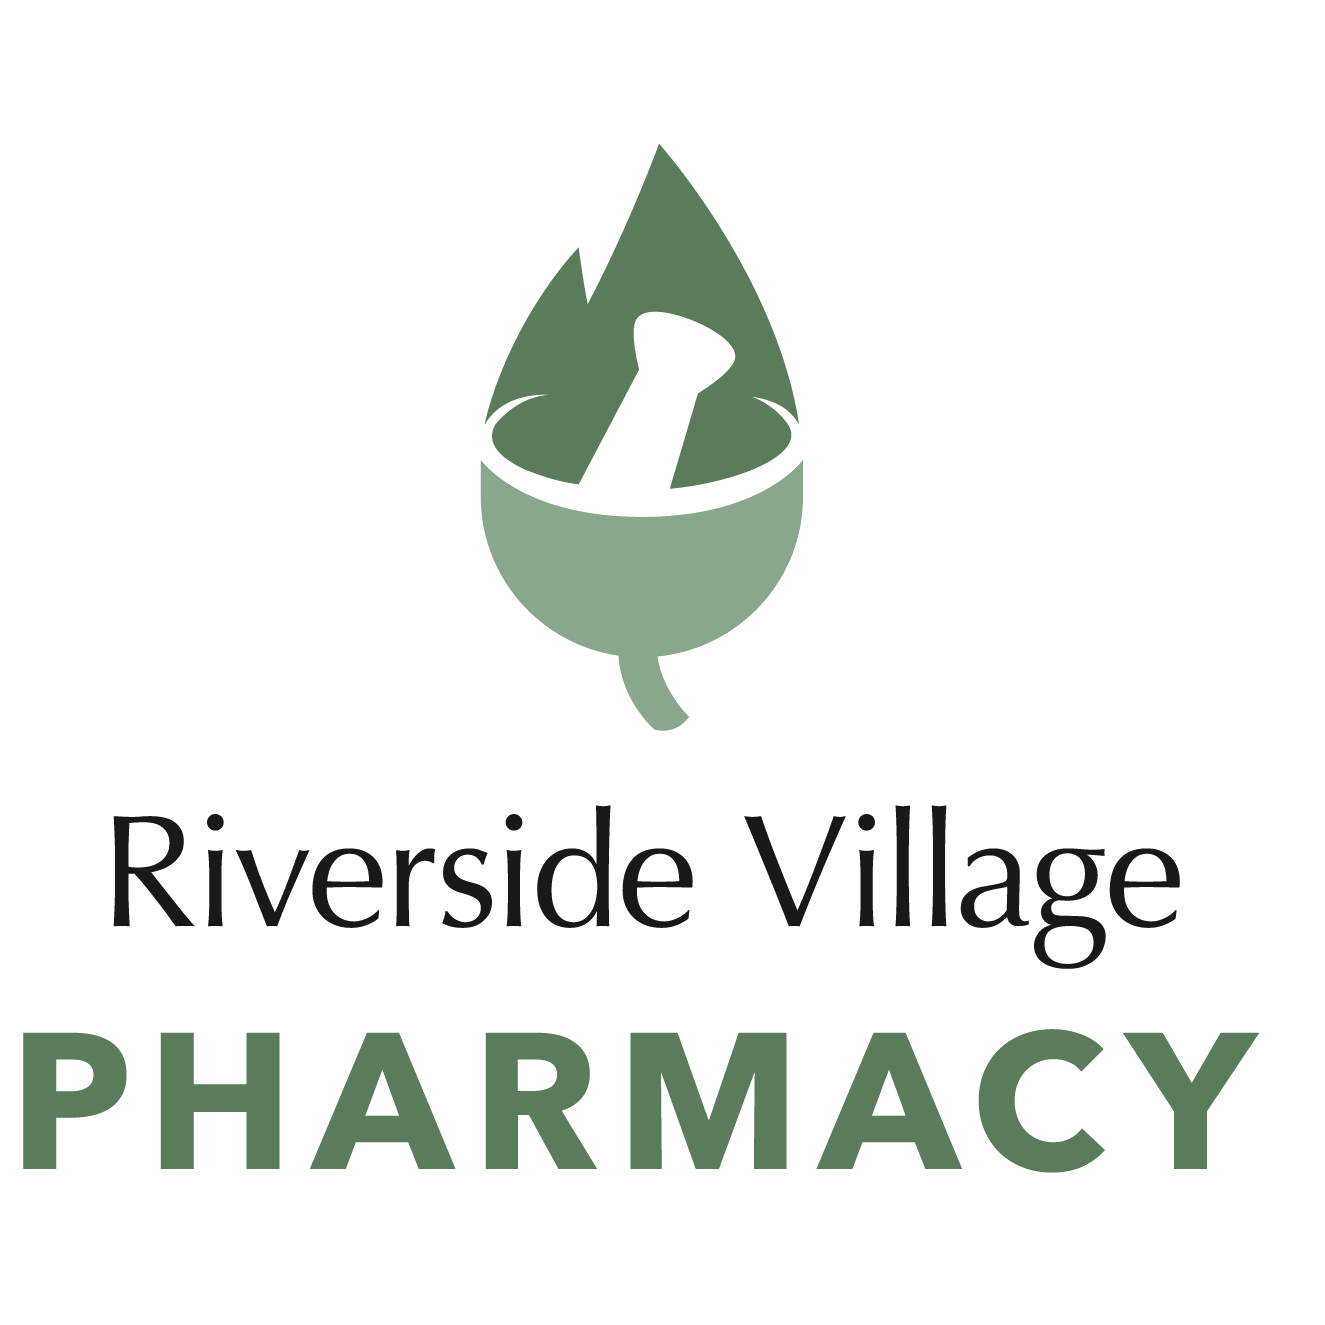 Riverside Village Pharmacy